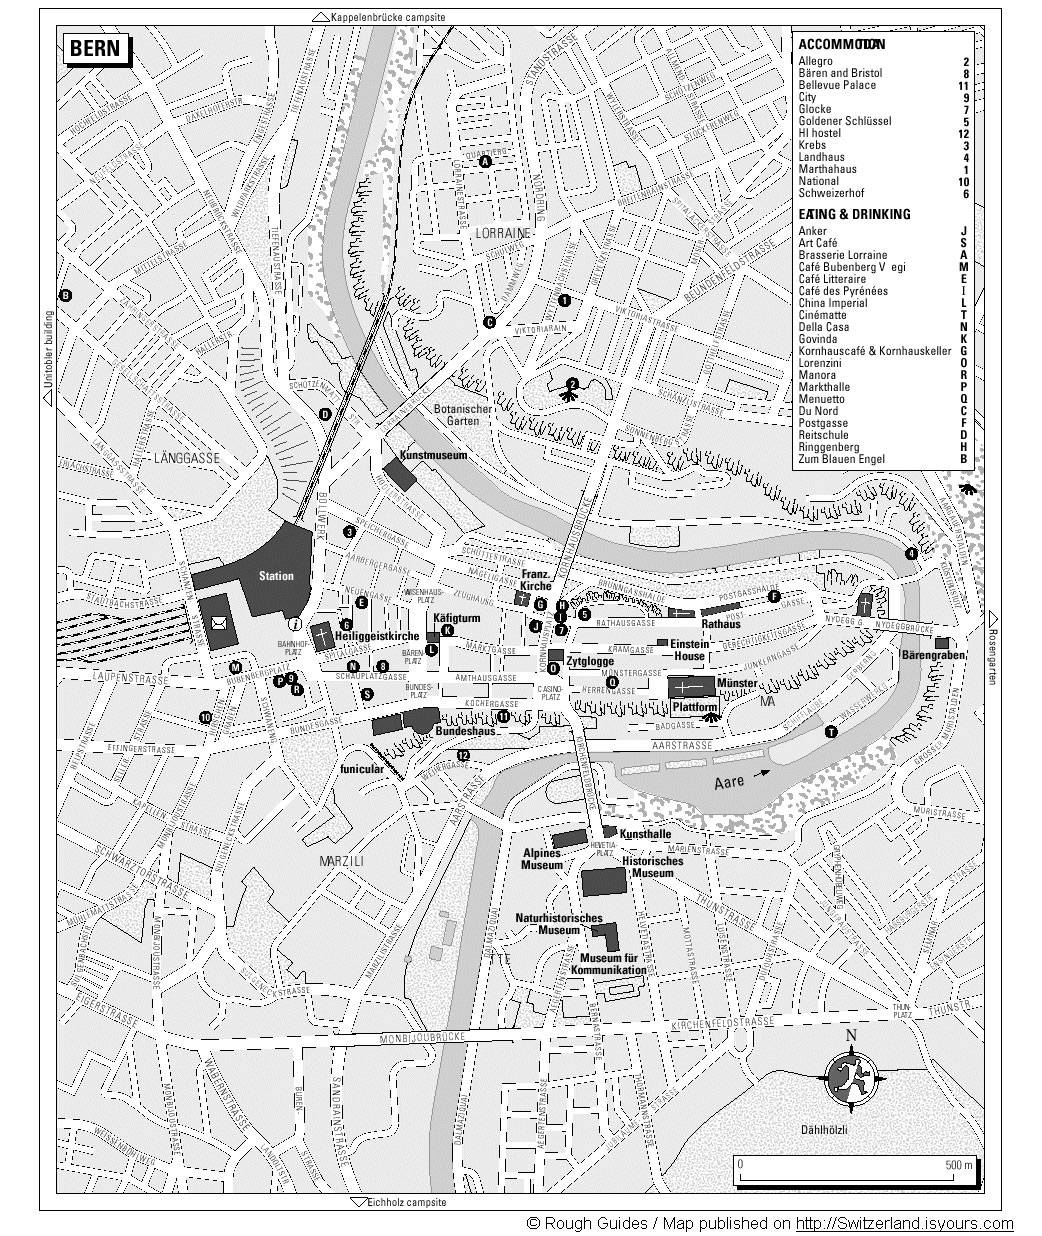 Large Bern Maps for Free Download and Print HighResolution and